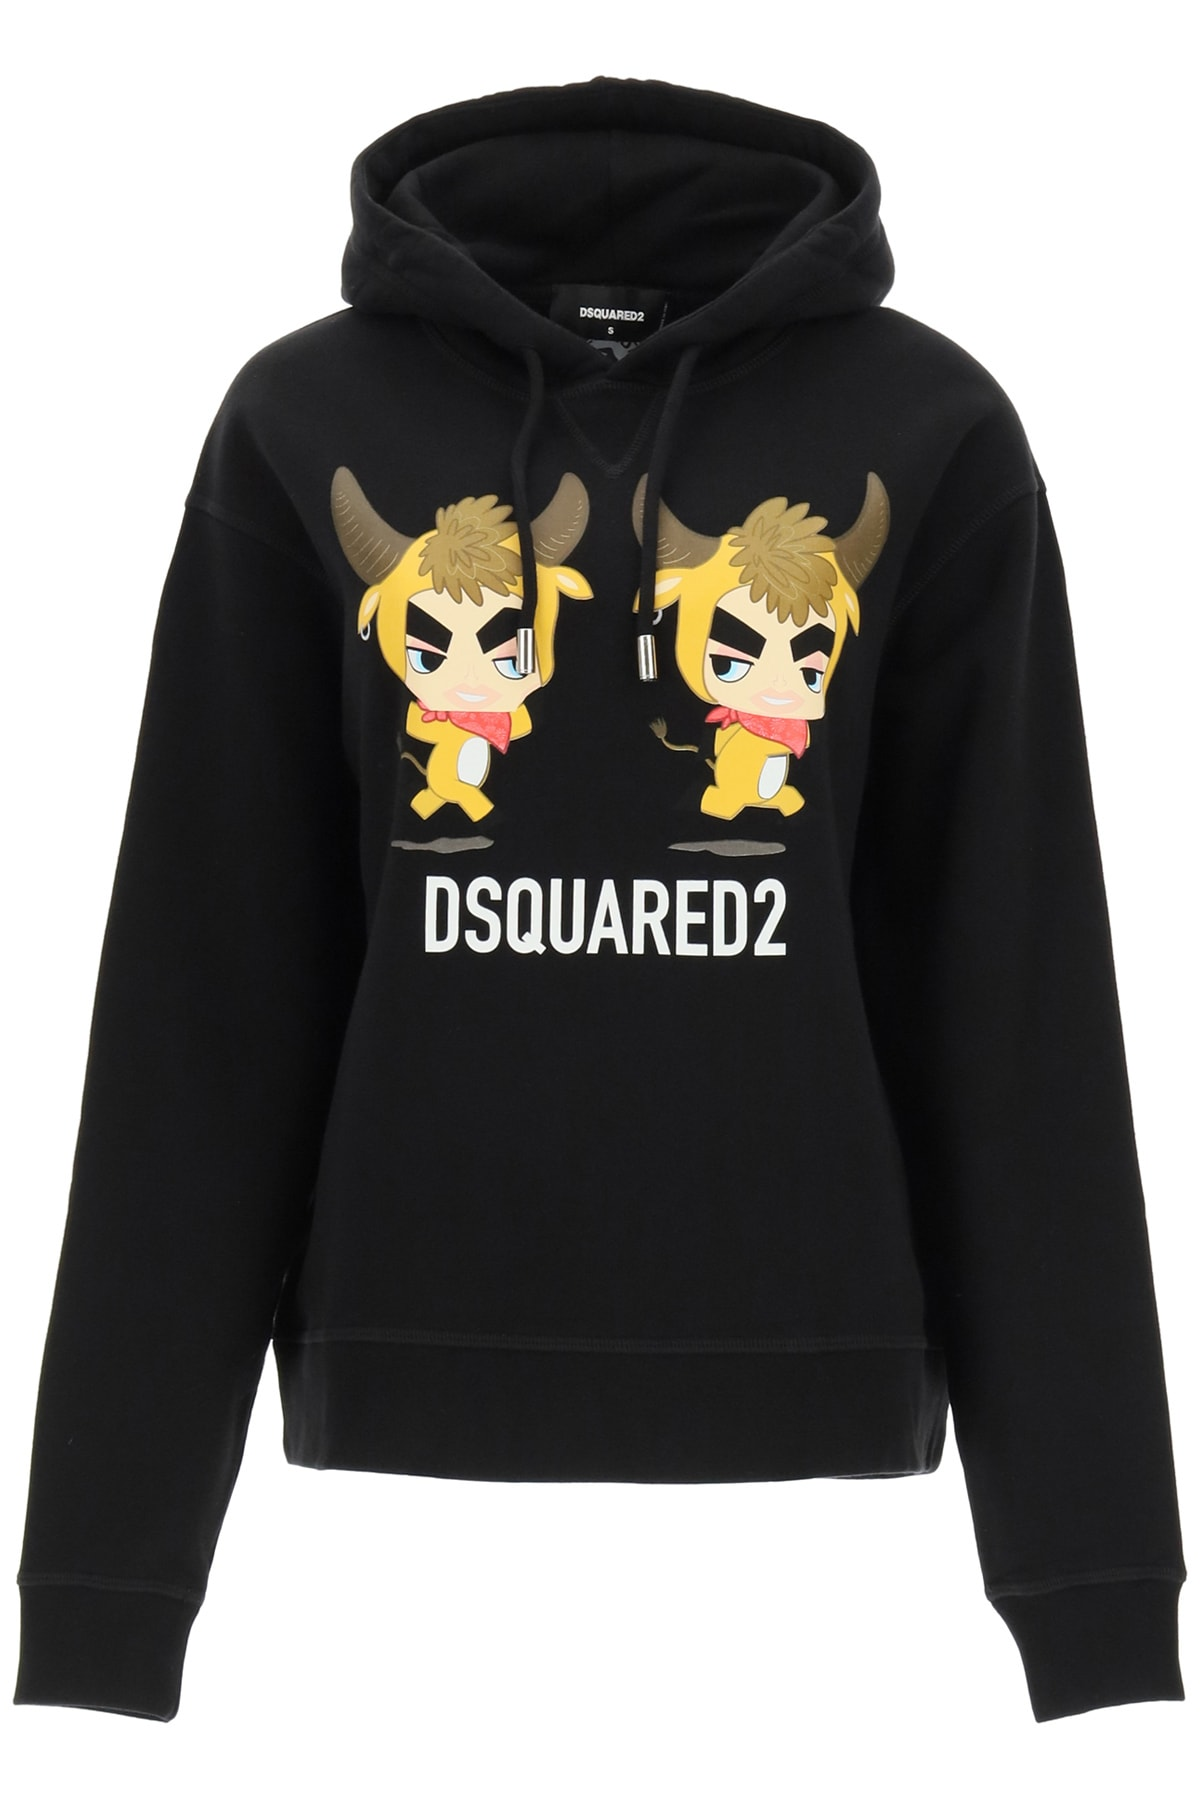 Dsquared2 YEAR OF THE OX HOODIE